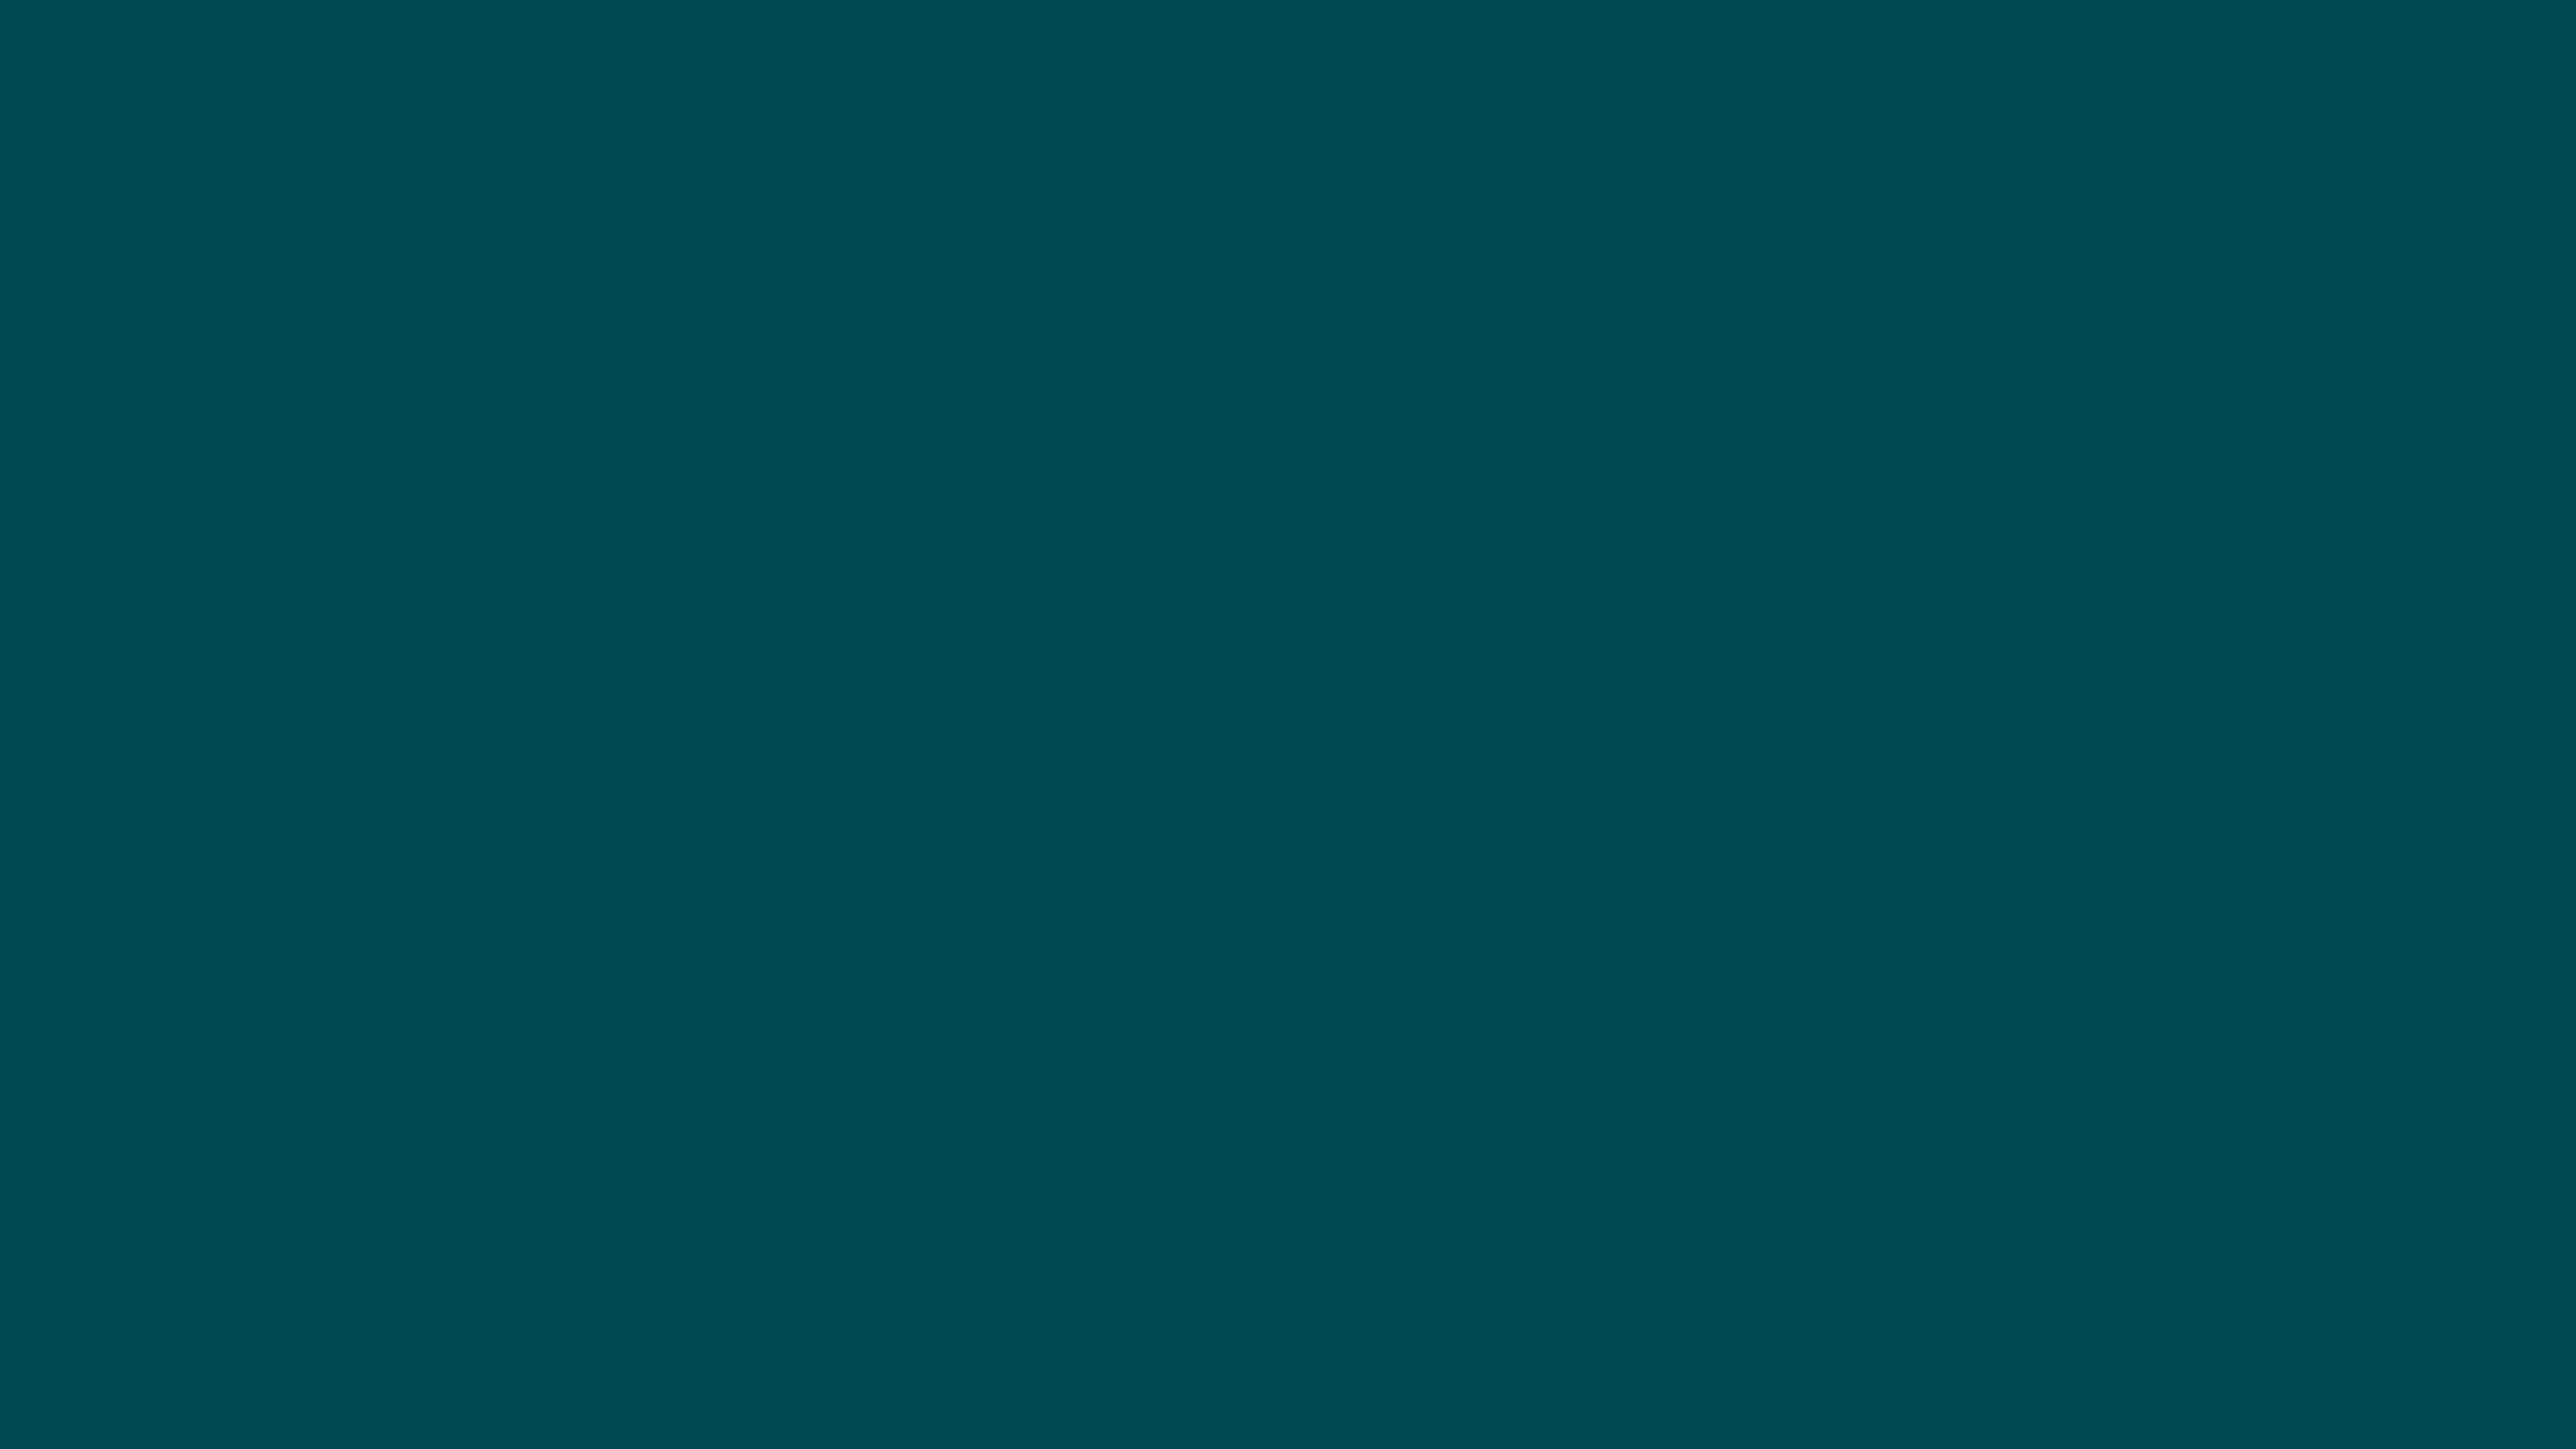 4096x2304 Midnight Green Solid Color Background